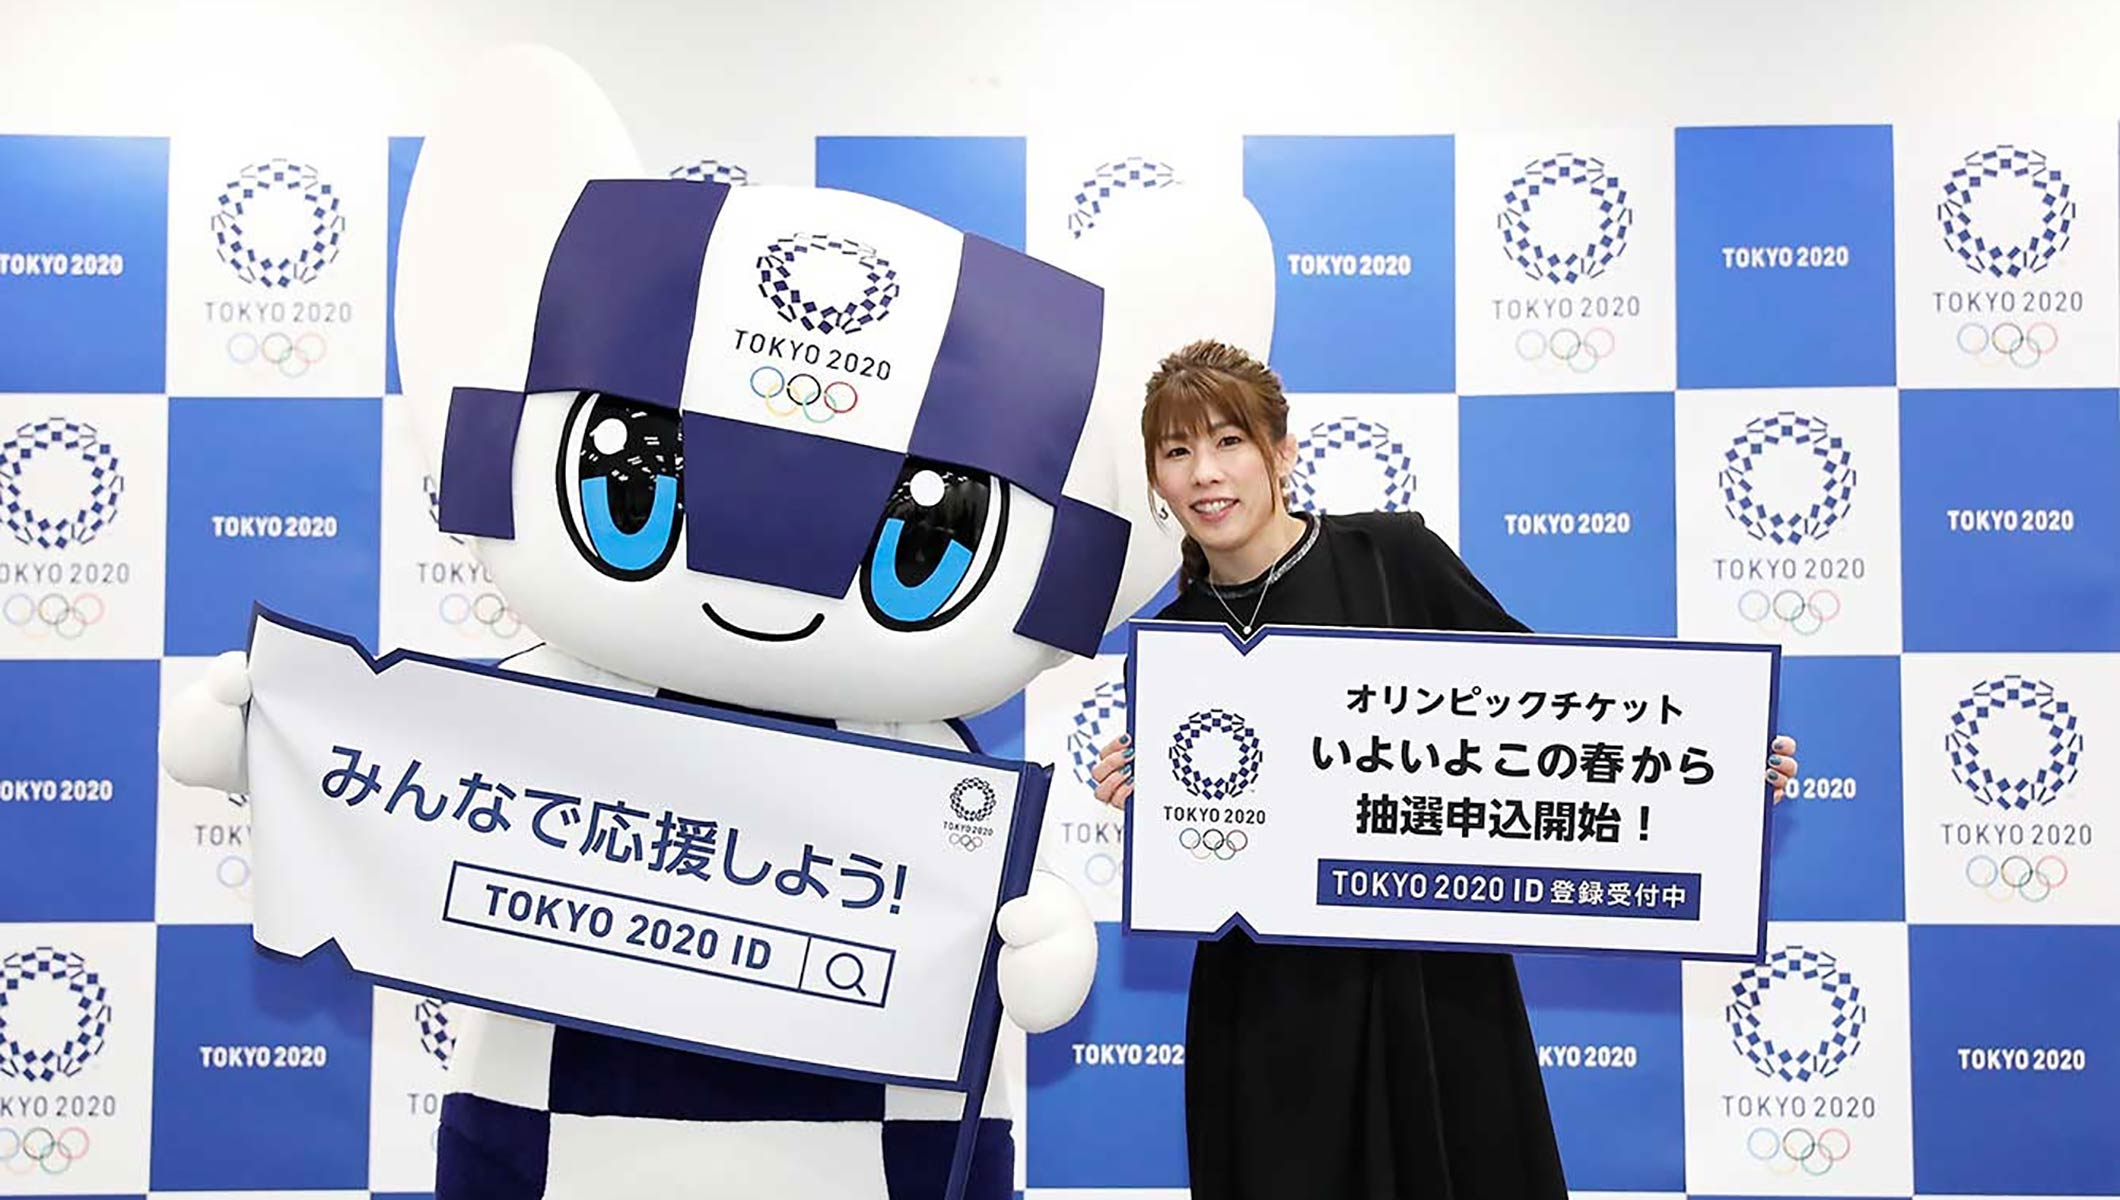 Inauguration Day 2020 Schedule Of Events Tokyo 2020 tickets   Tokyo 2020 launches official ticket website